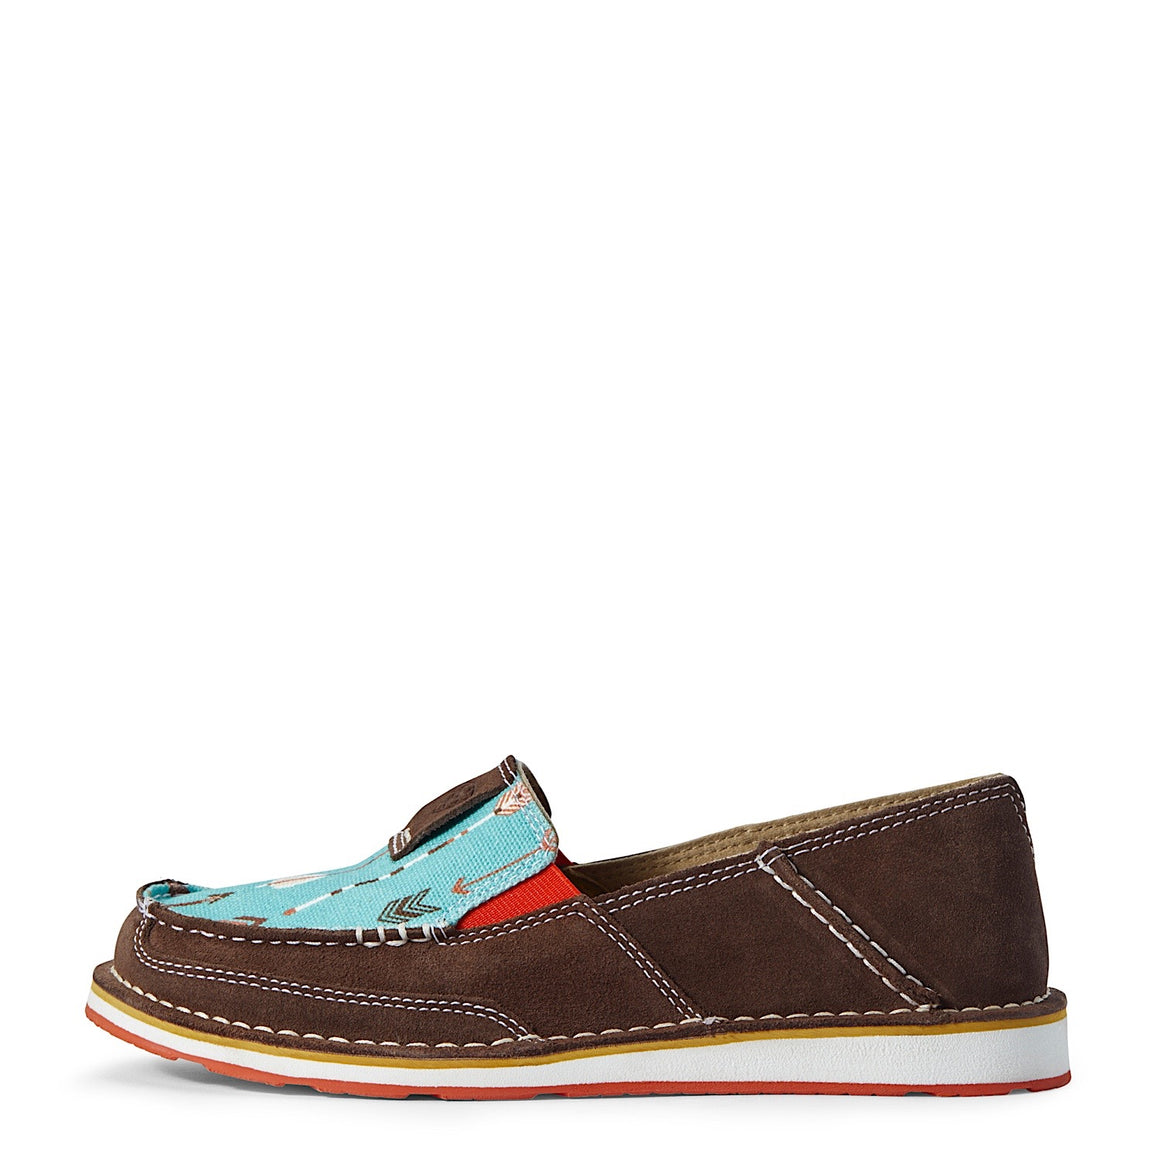 Ariat Womens Cruiser Chocolate Suede/Turquoise Arrows